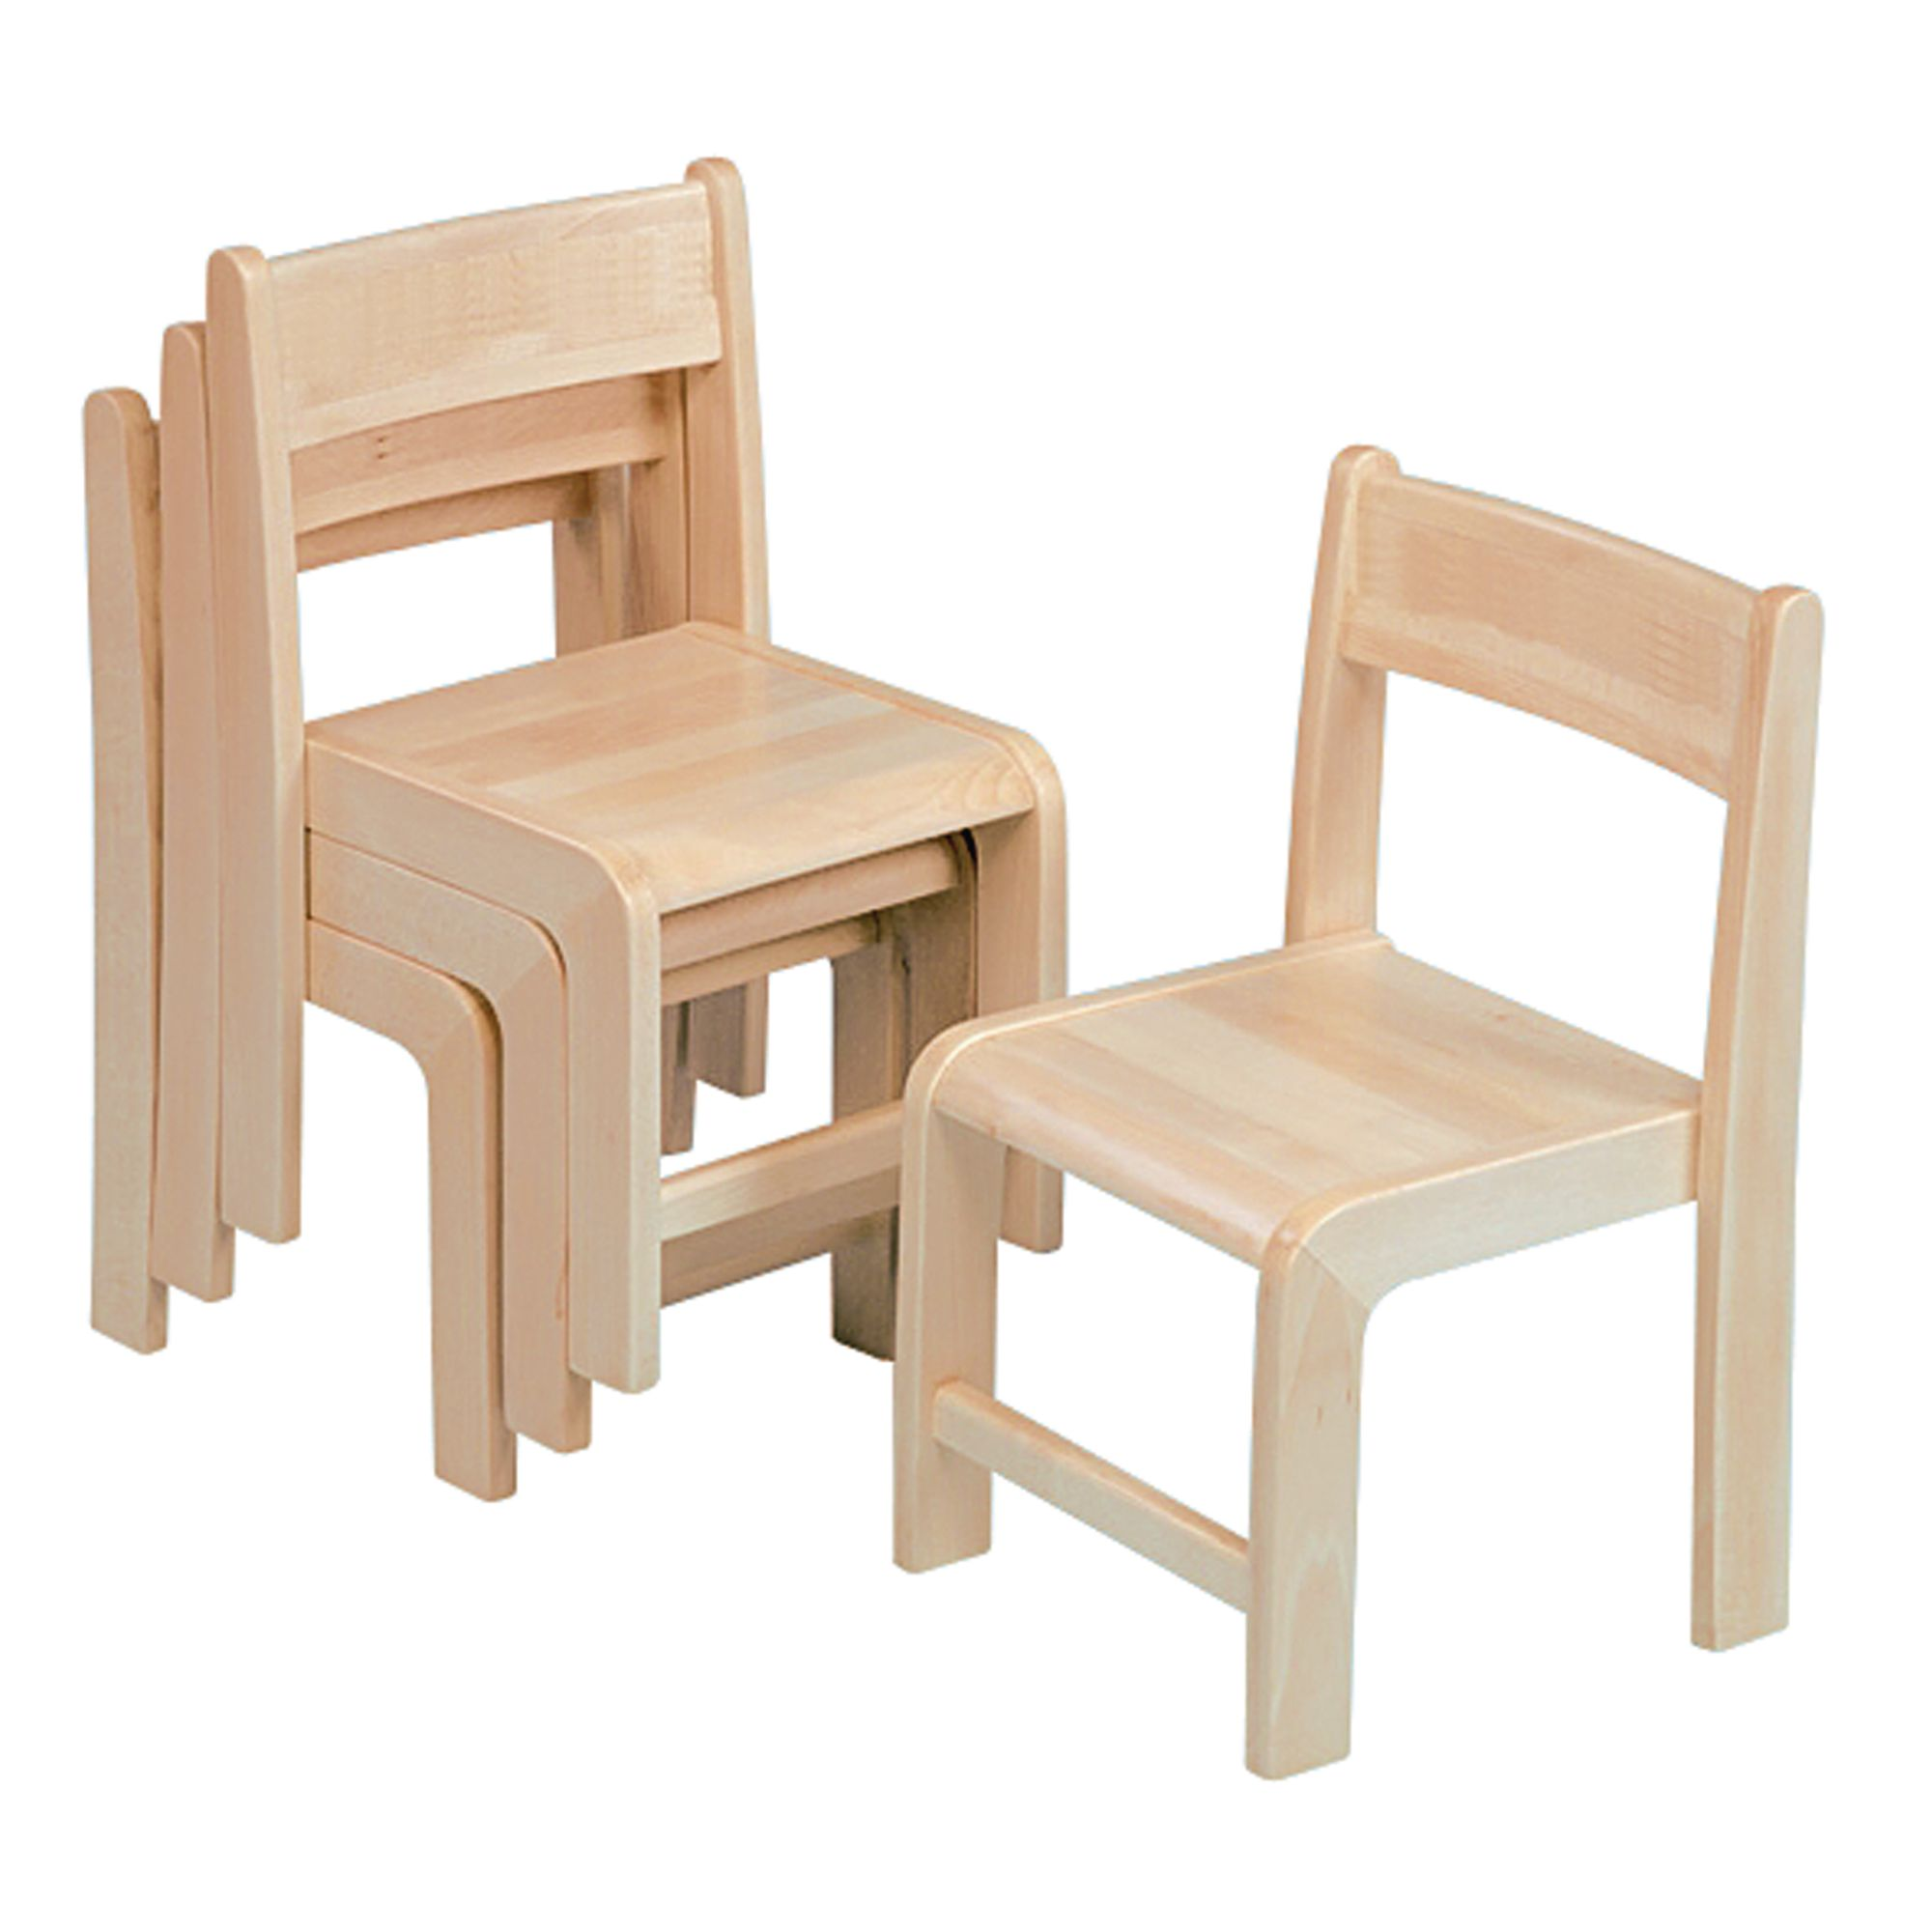 Stackable Wooden Chairs Seat Height 210mm